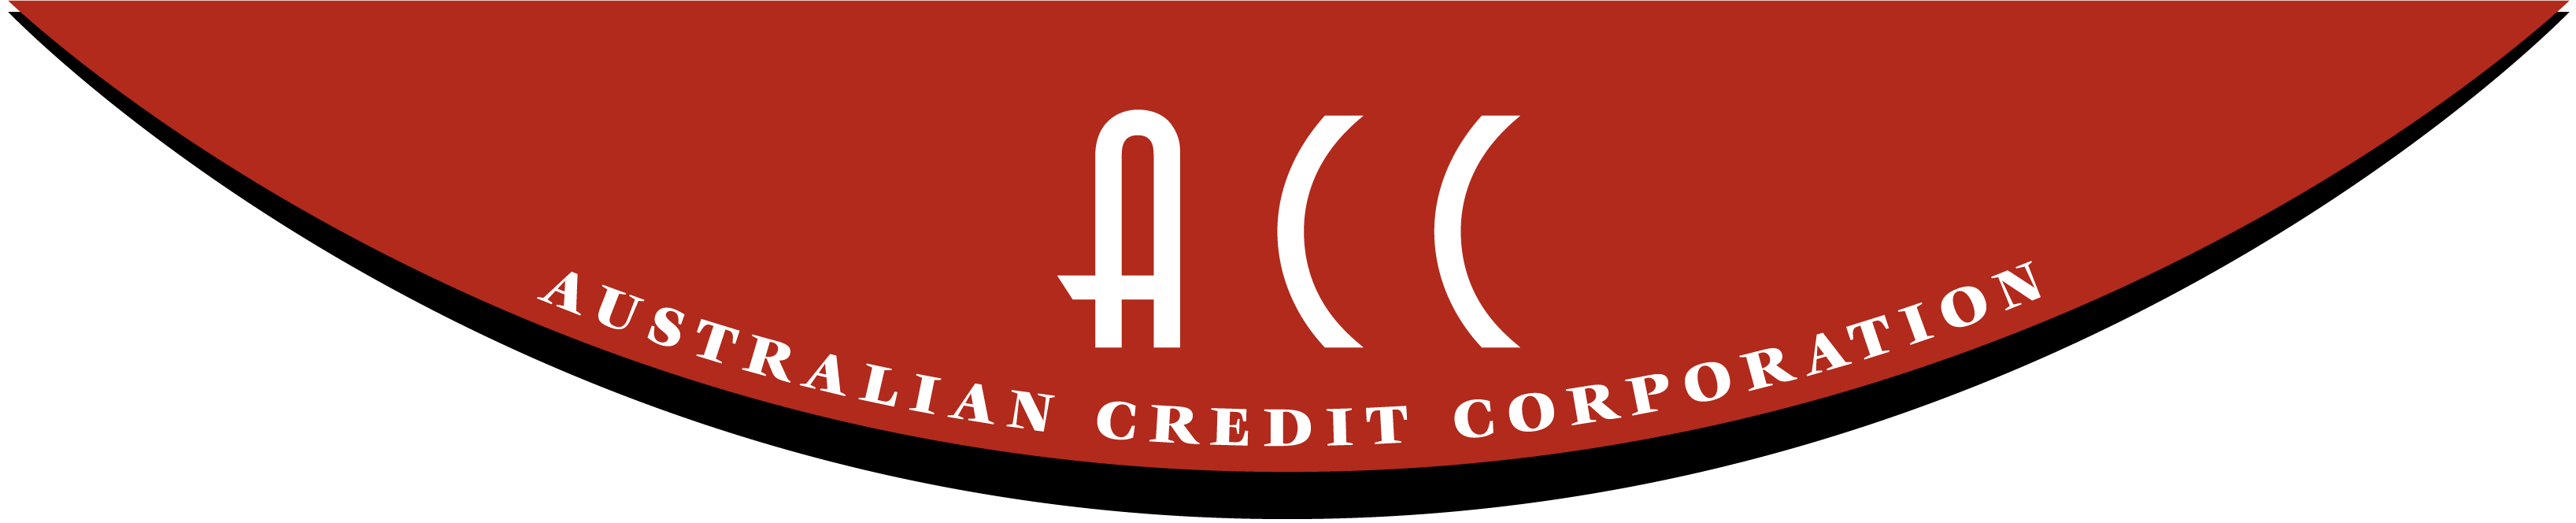 Australian Credit Corporation Logo